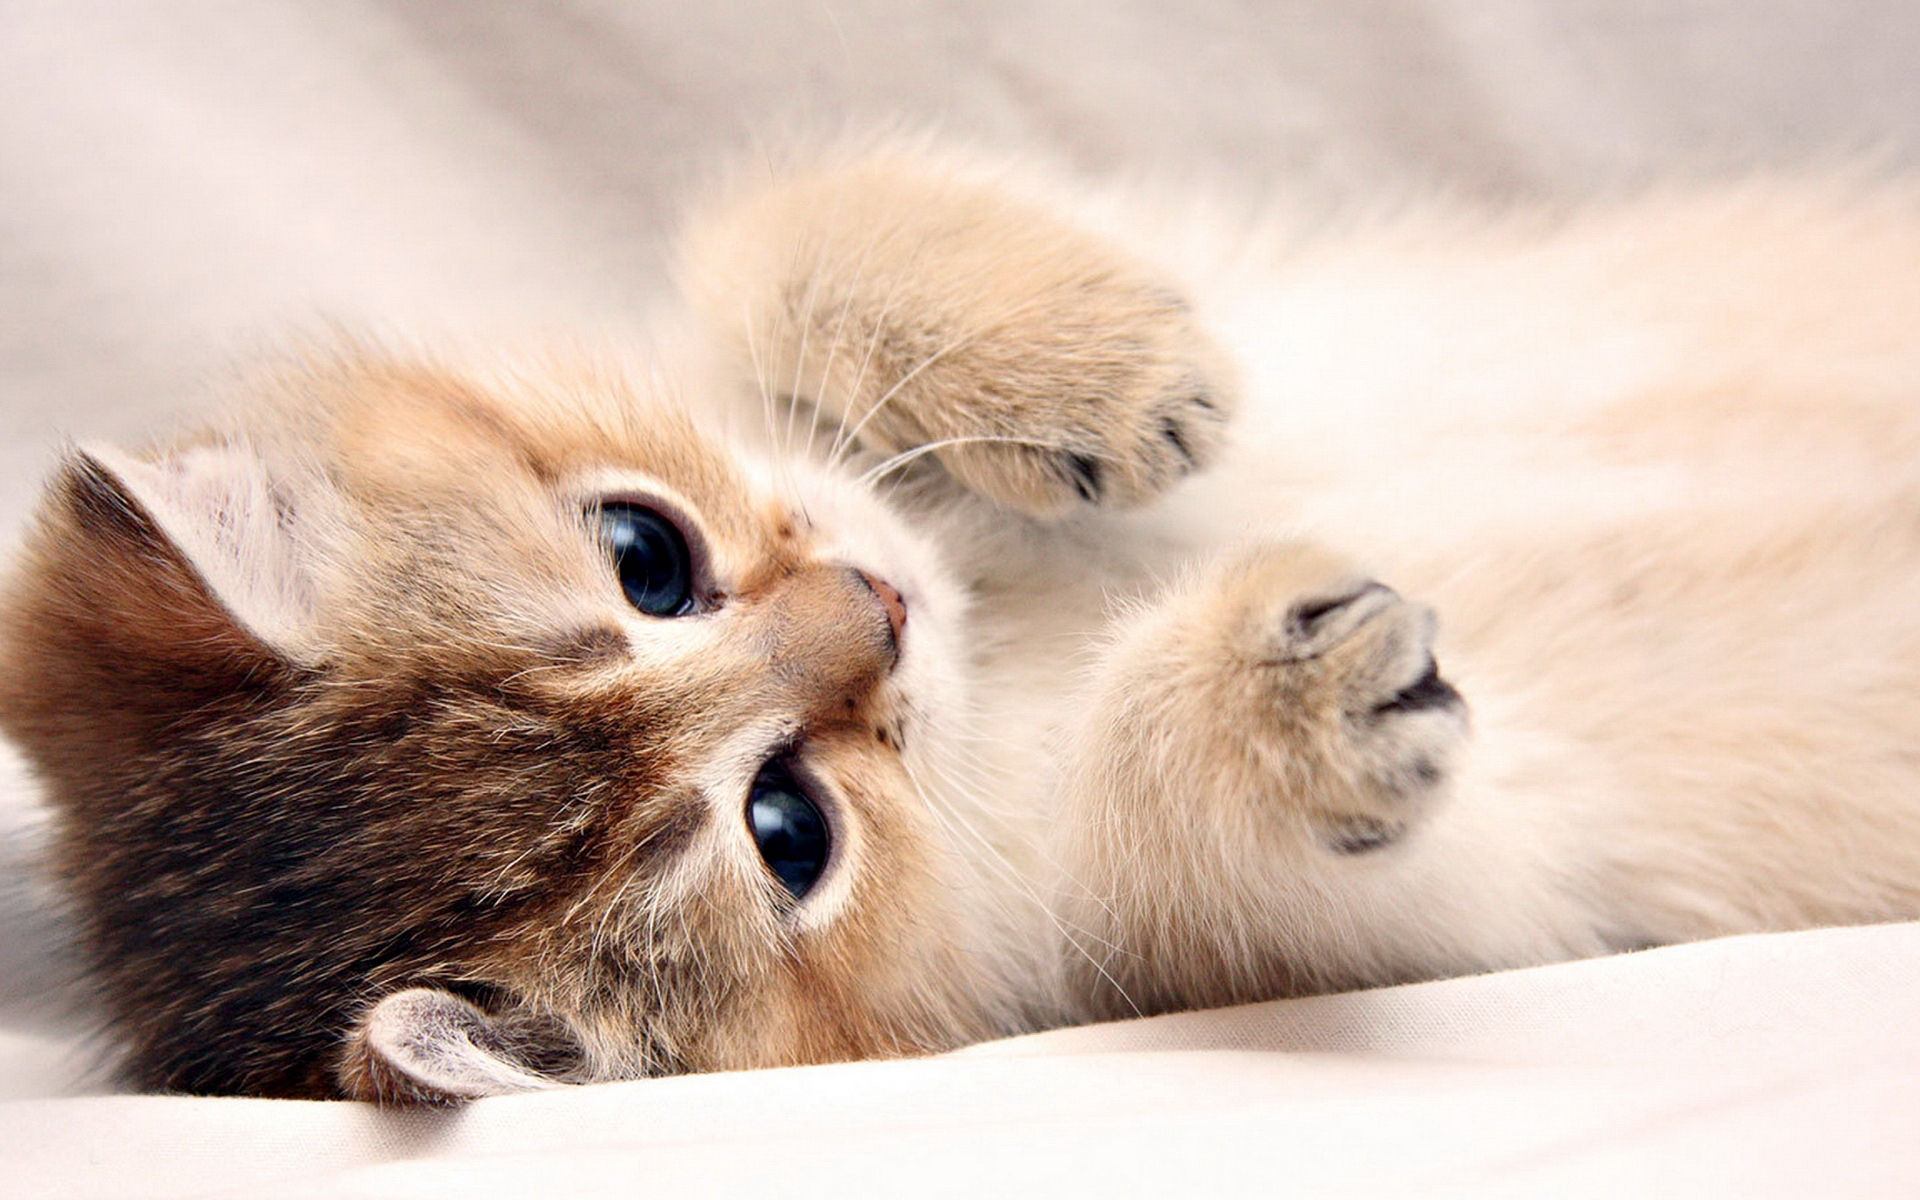 baby cat wallpaper 30567 1920x1200 px ~ hdwallsource